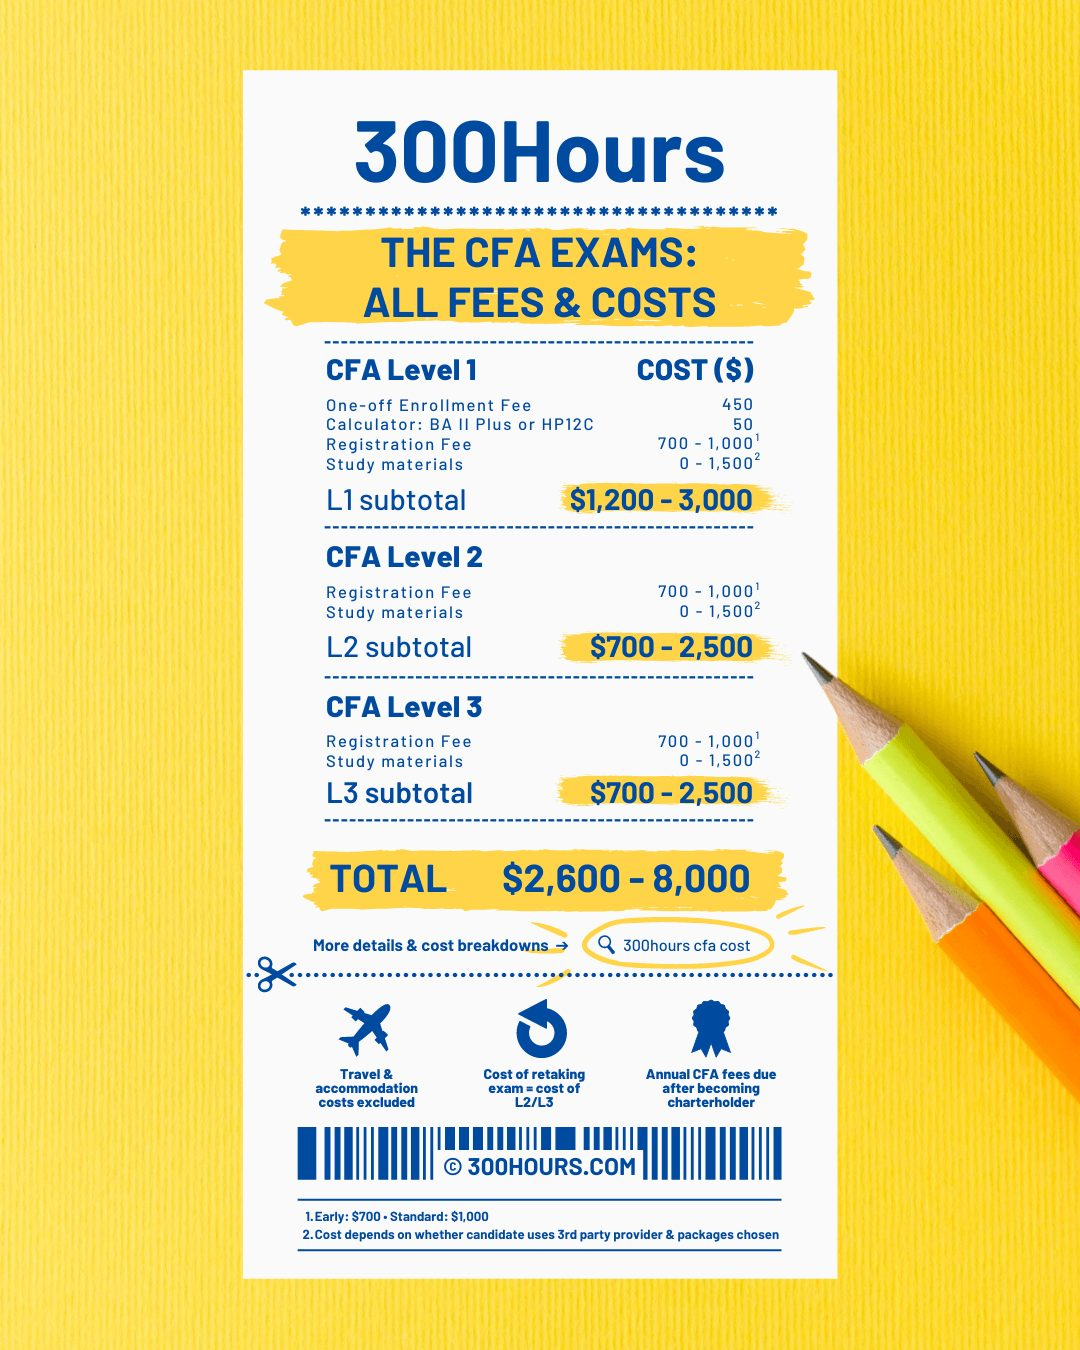 cfa exam cost and fees infographic